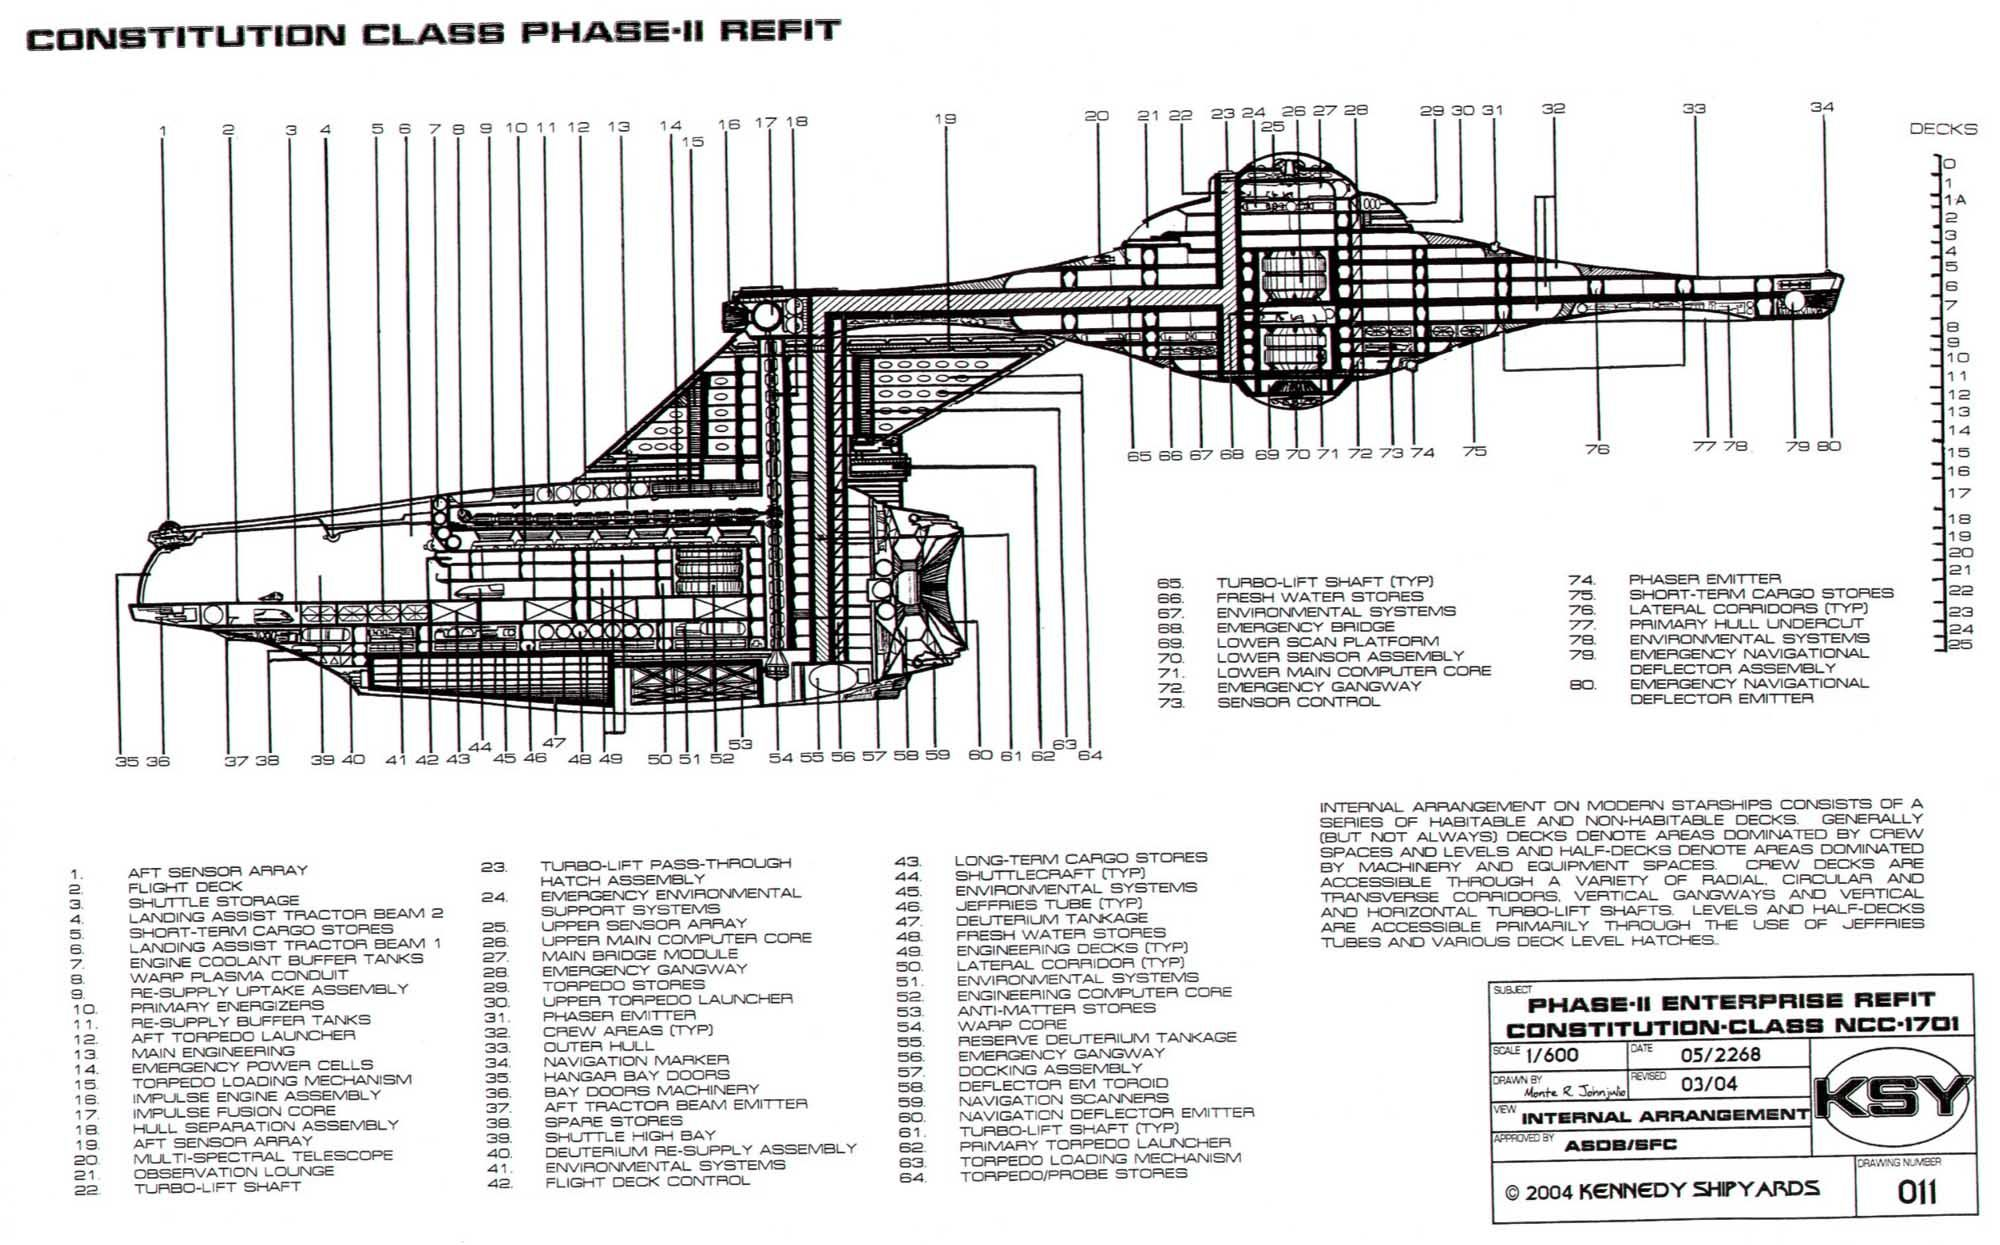 Star Trek Blueprints Enterprise Nx 01 Deck Plans Pictures To Pin On Uss Enterprise Schematic on enterprise-e schematics, robotech schematics, gilso star trek schematics, uss vengeance schematics, uss excelsior schematics, uss ncc-1701 d, star trek voyager schematics, enterprise-j schematics, uss voyager specifications, uss voyager lcars, ncc 1701 e schematics, ds9 schematics, new enterprise ncc-1701 schematics, uss voyager schematics, star trek enterprise schematics, uss defiant schematics, uss reliant schematics, star trek lcars schematics, enterprise nx-01 schematics, enterprise-d schematics,